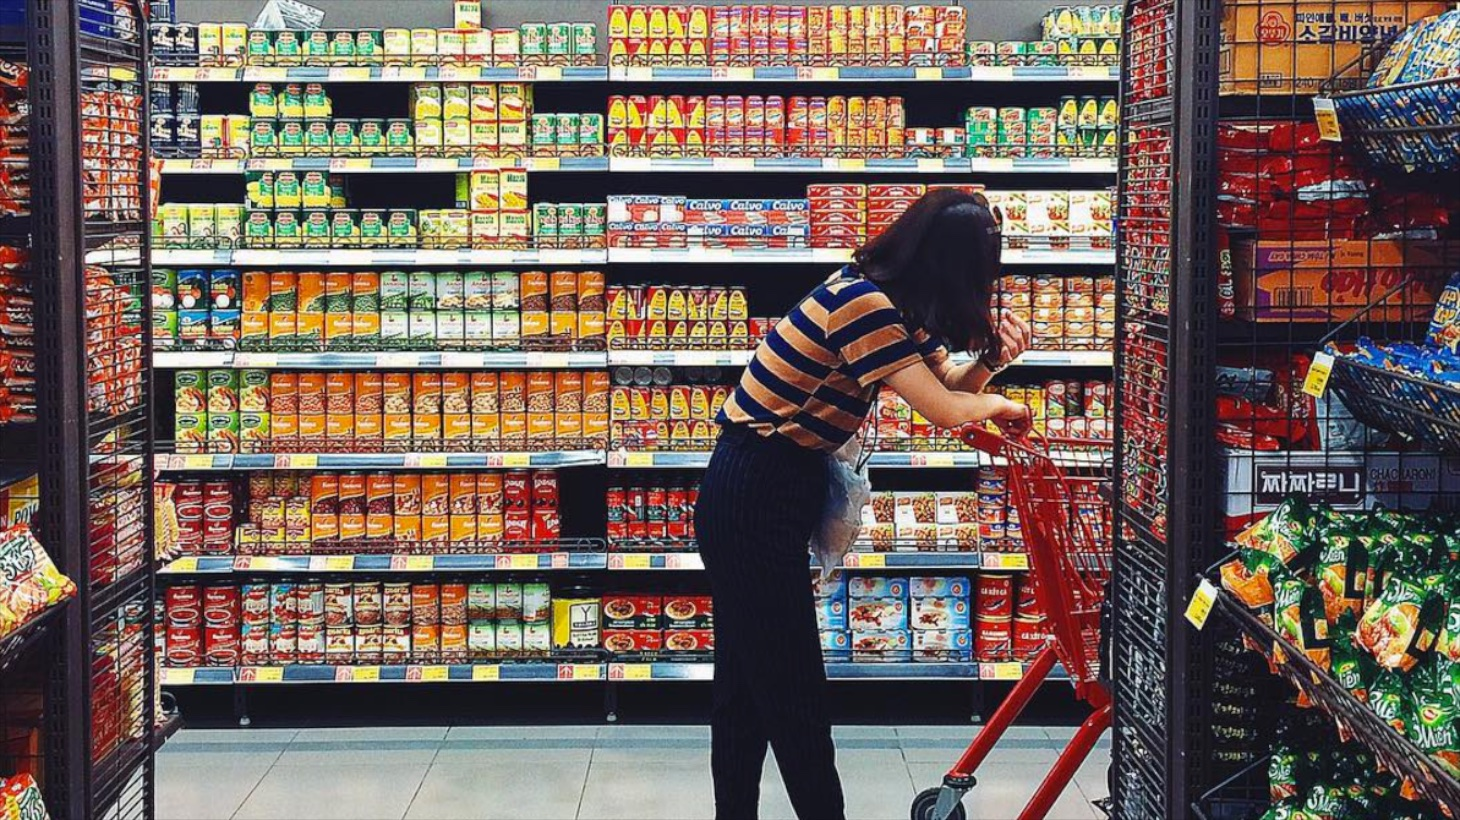 Dual-Channel Shopping at Smart Food Hall, South Korea